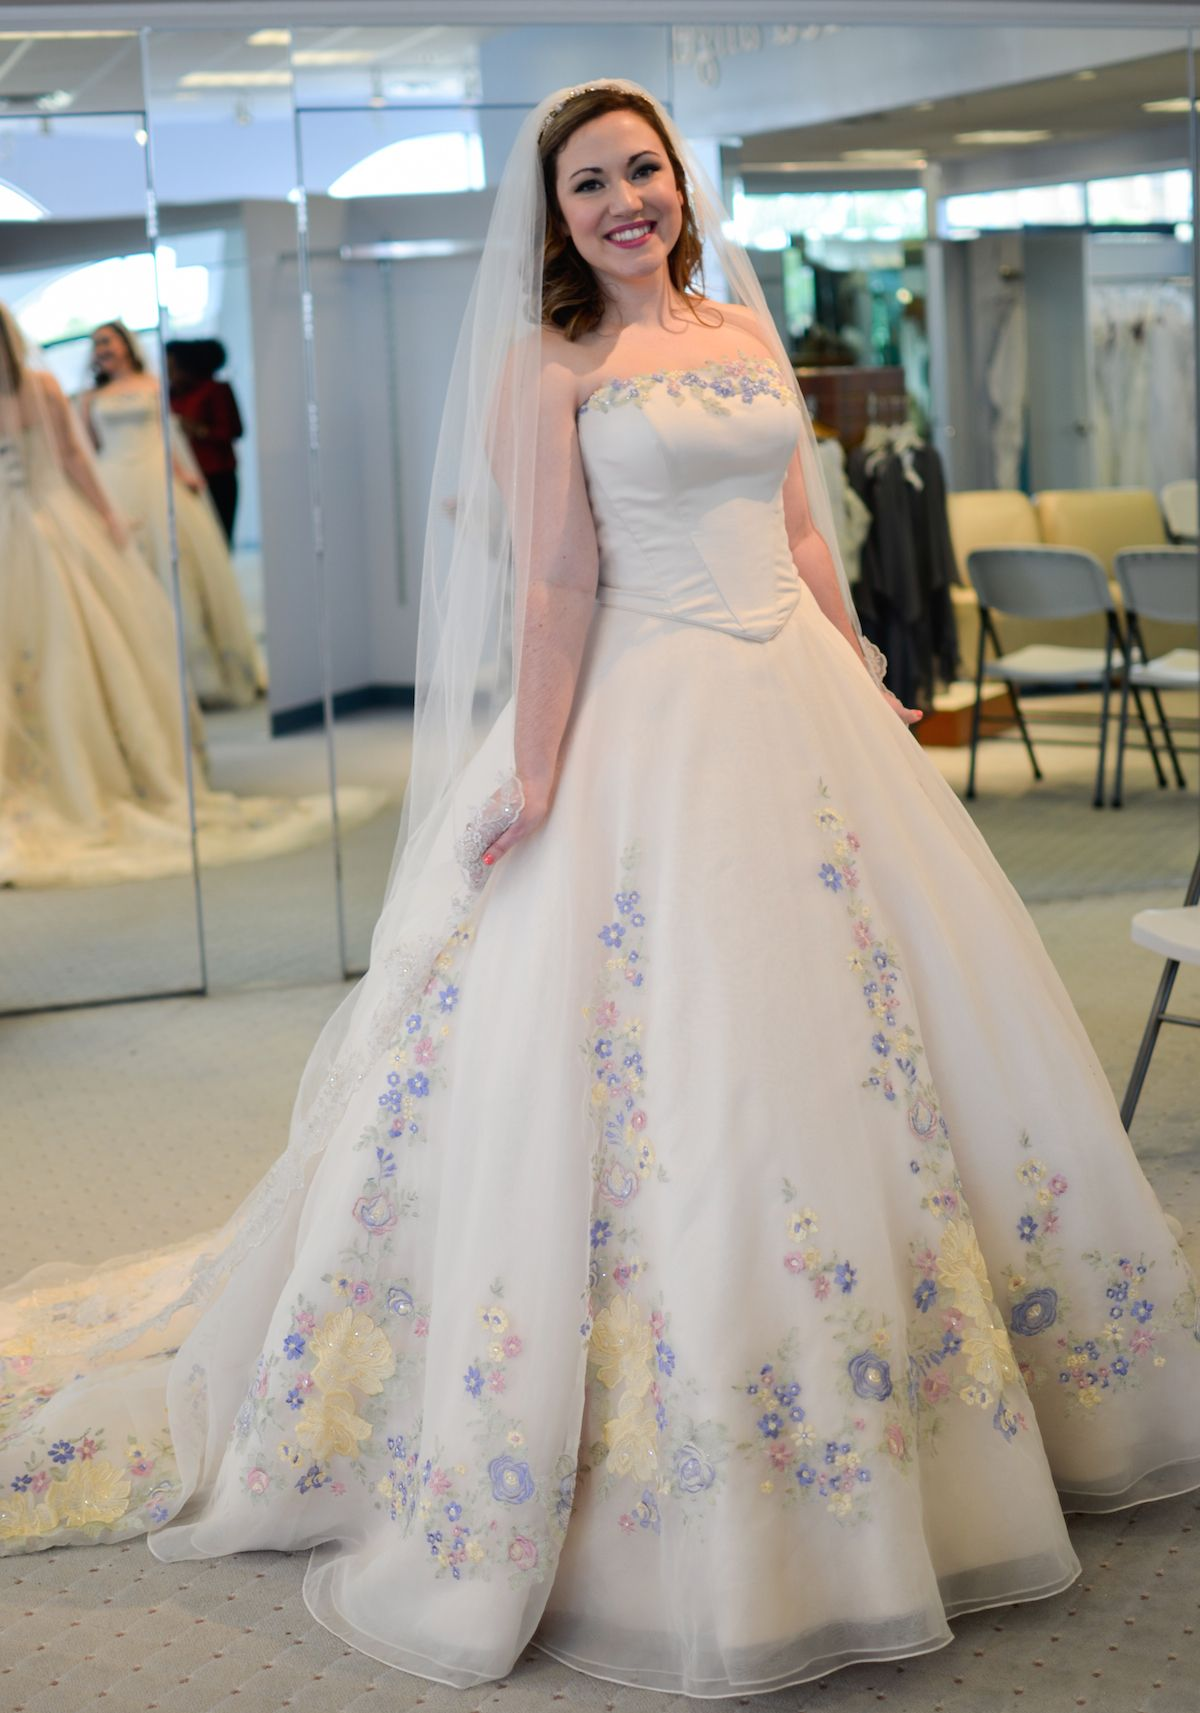 Cinderella Wedding Dress From New York